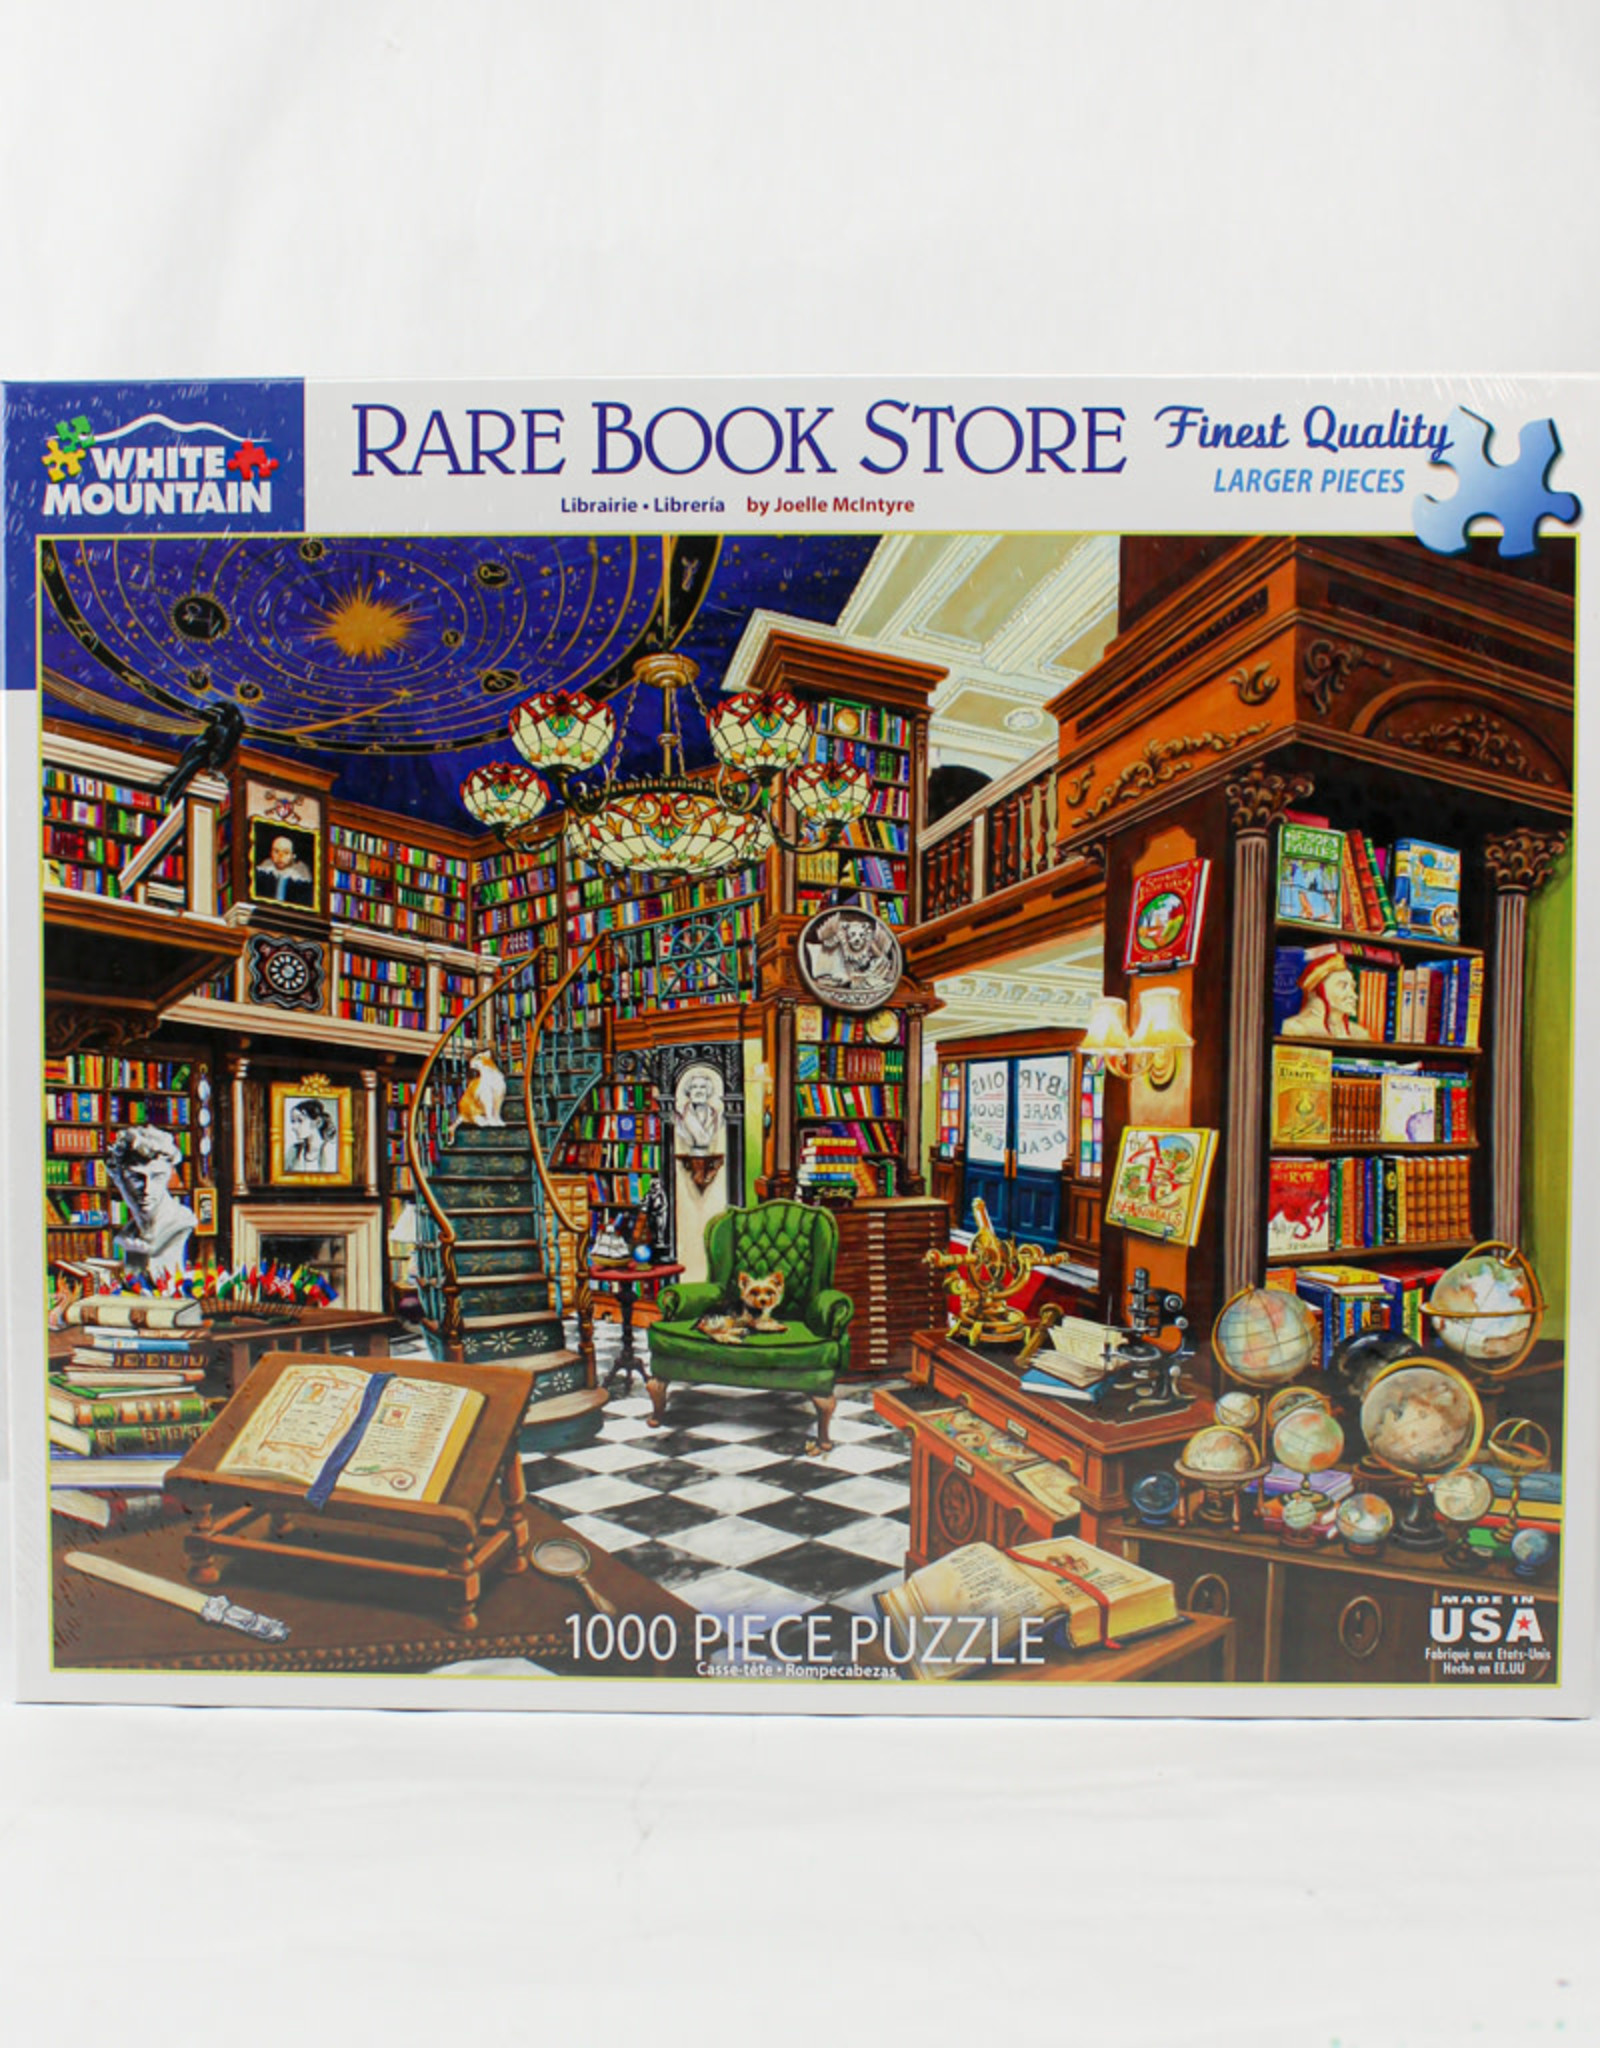 White Mountain Puzzles Rare Book Store 1000pc Puzzle